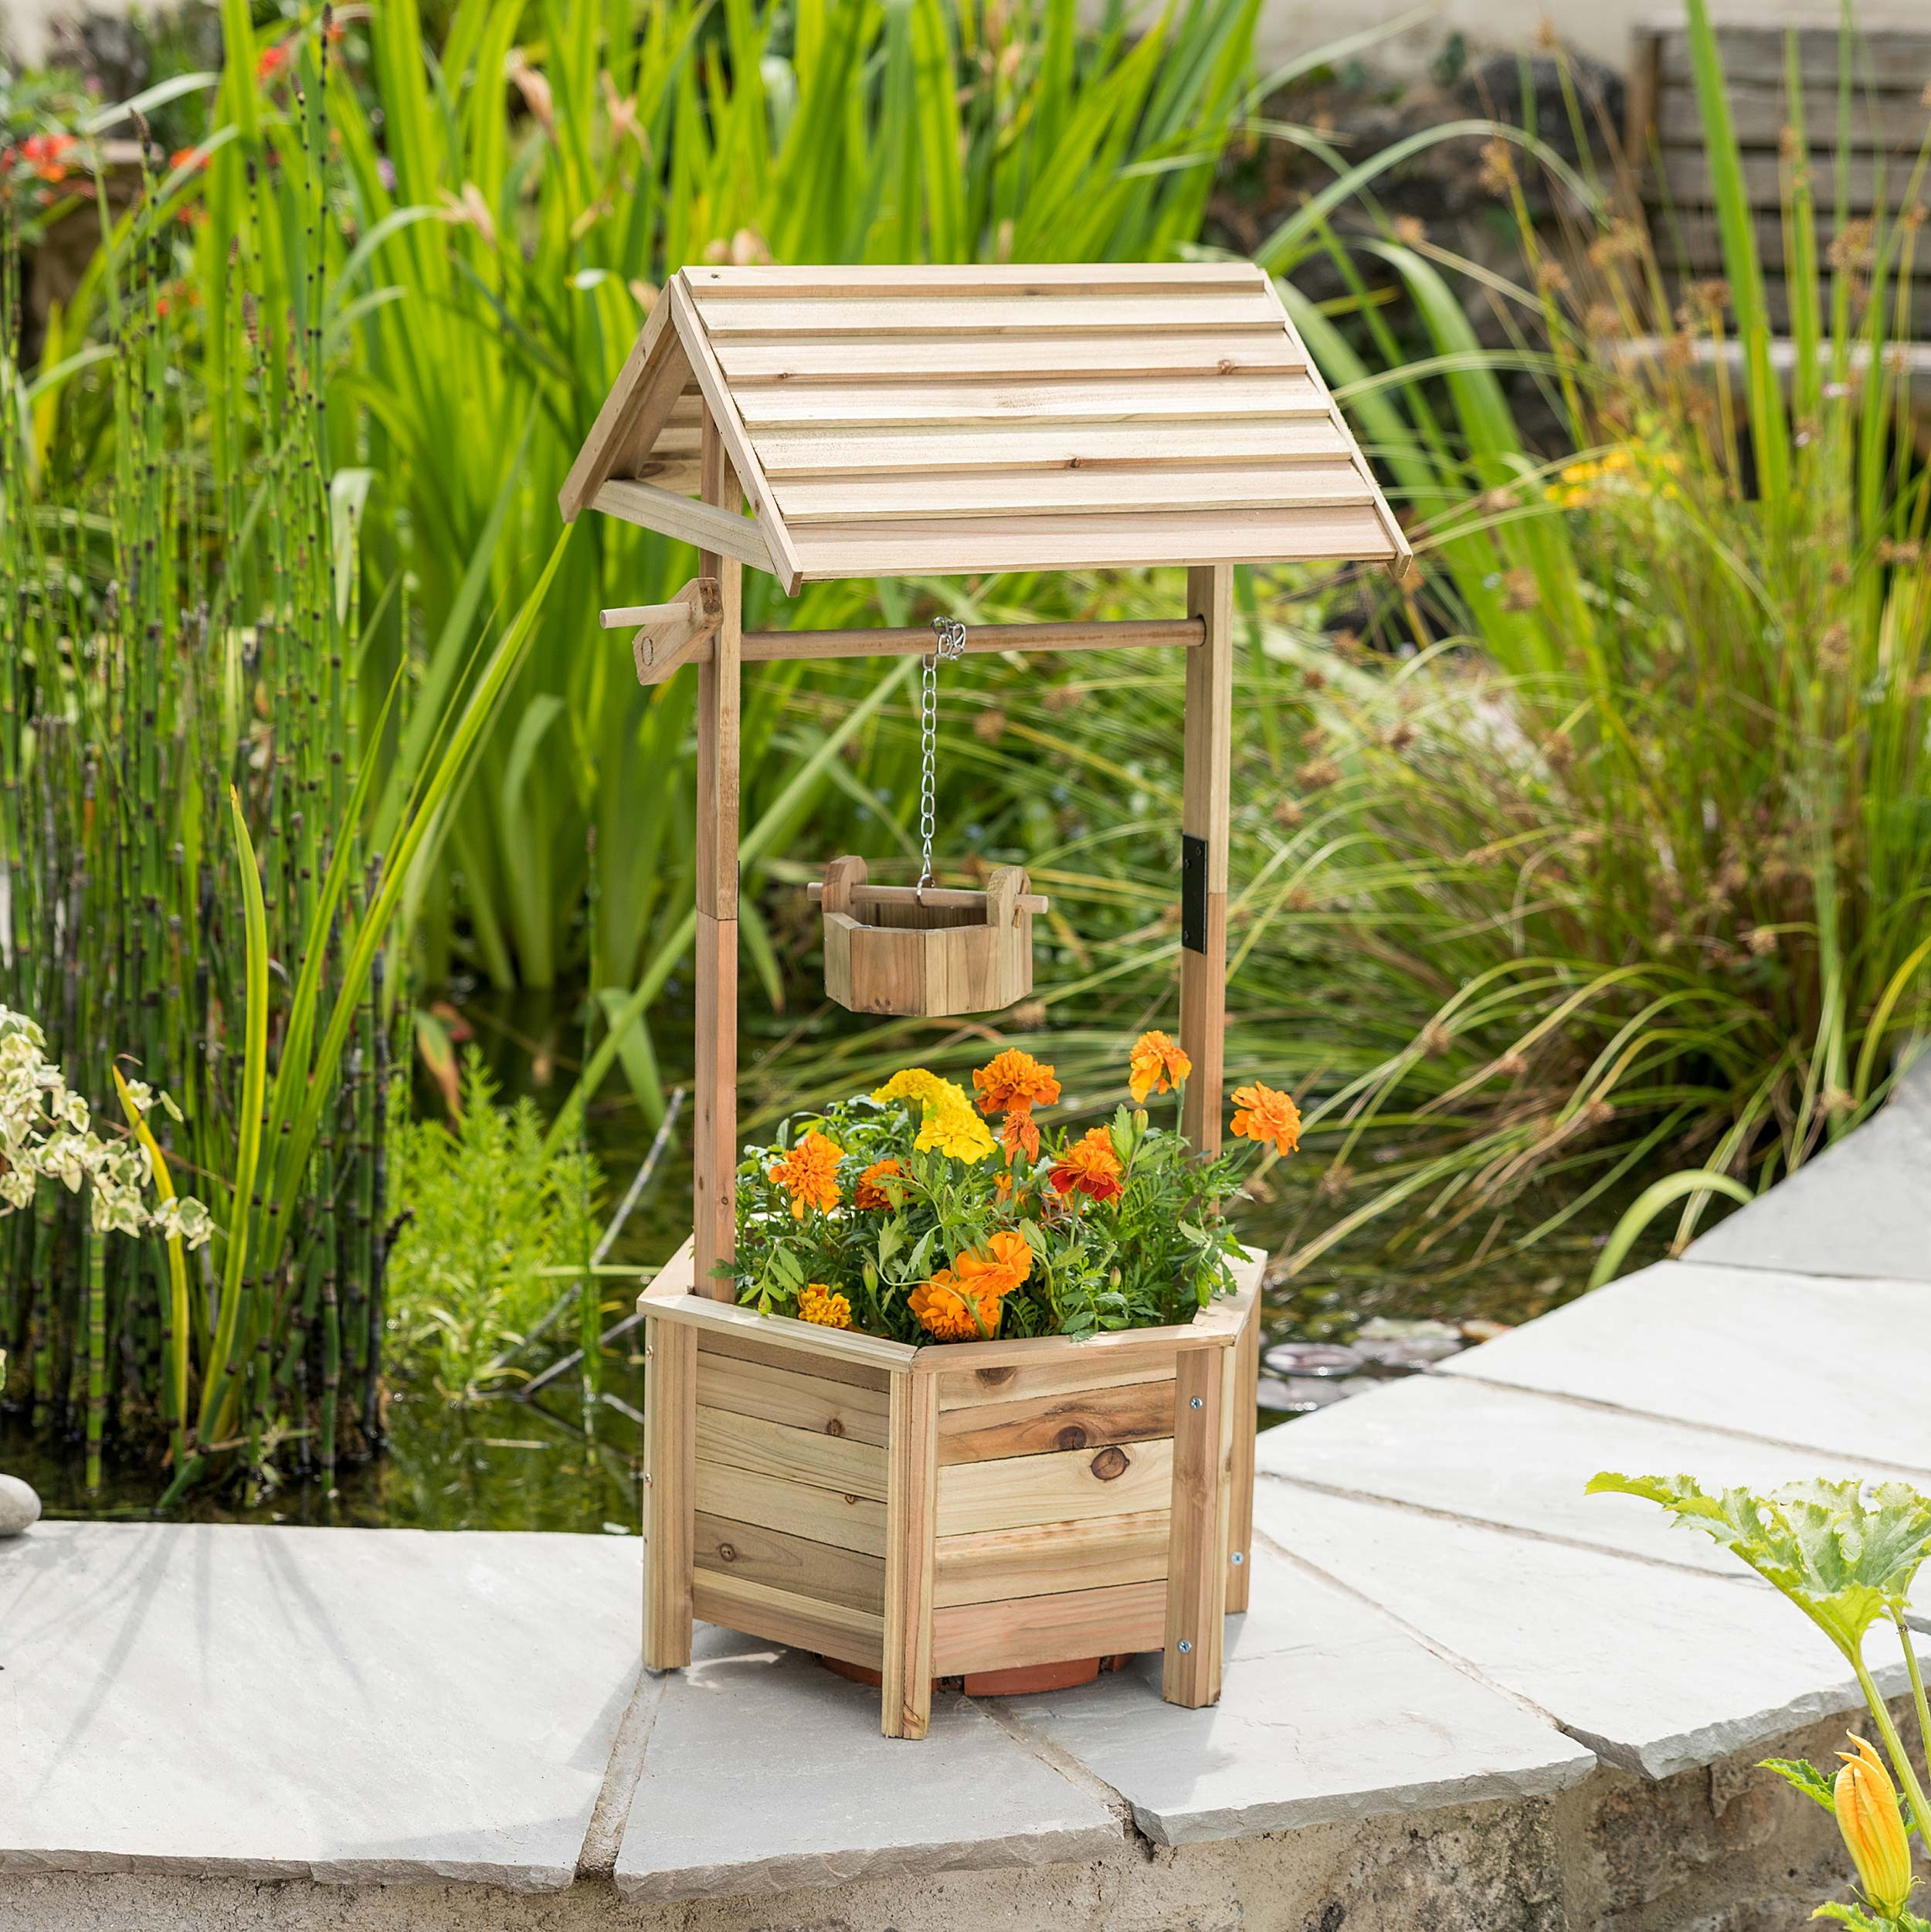 Image of Christow Wooden Wishing Well Planter